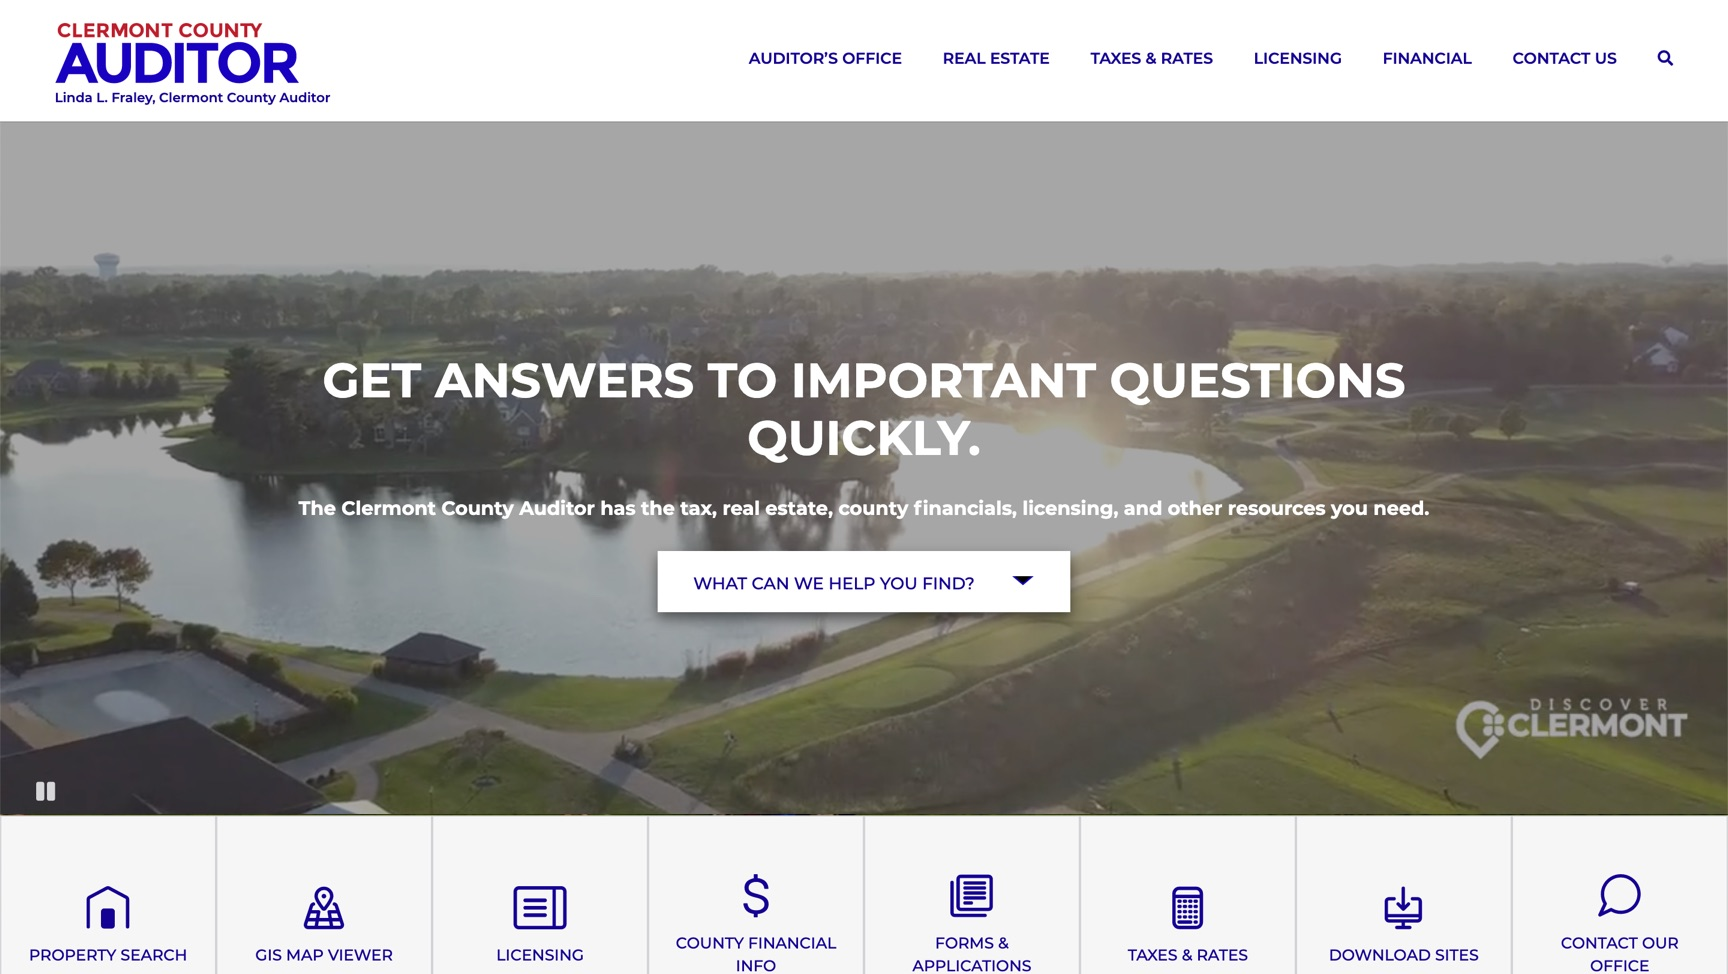 Clermont County Auditor website homepage